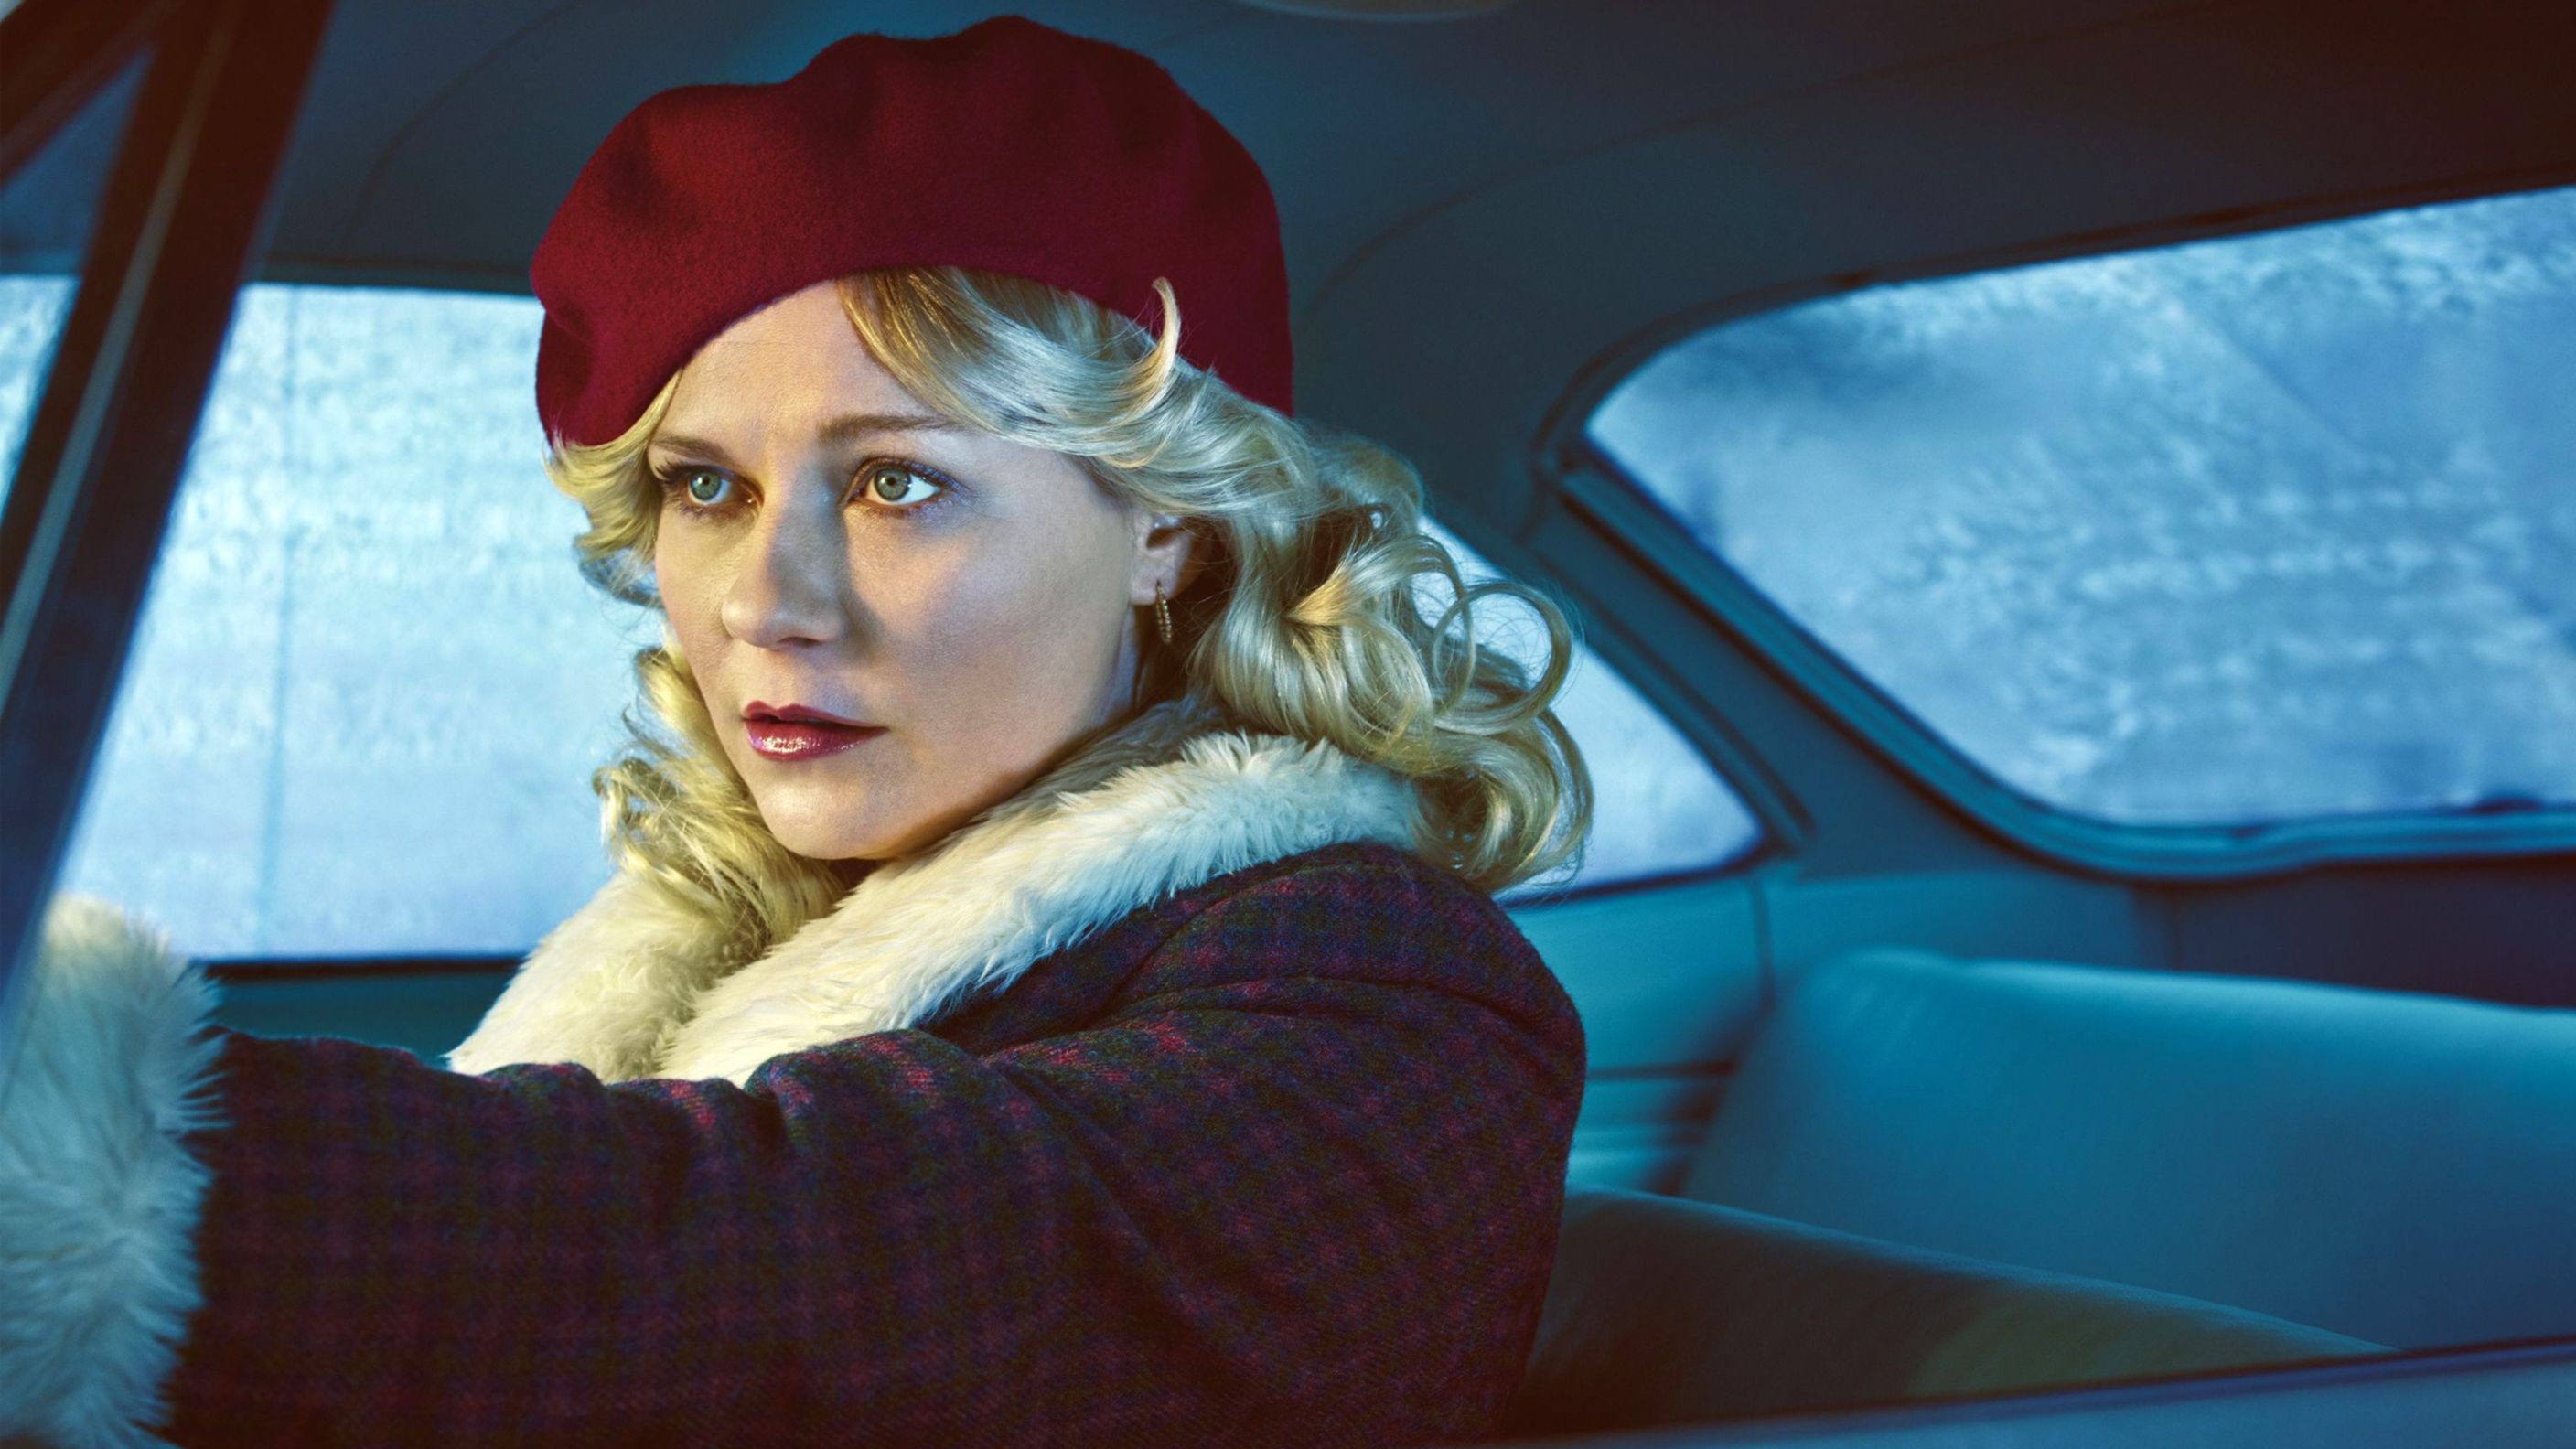 Download free HD Fargo TV Series Kirsten Dunst HD Wallpaper, image